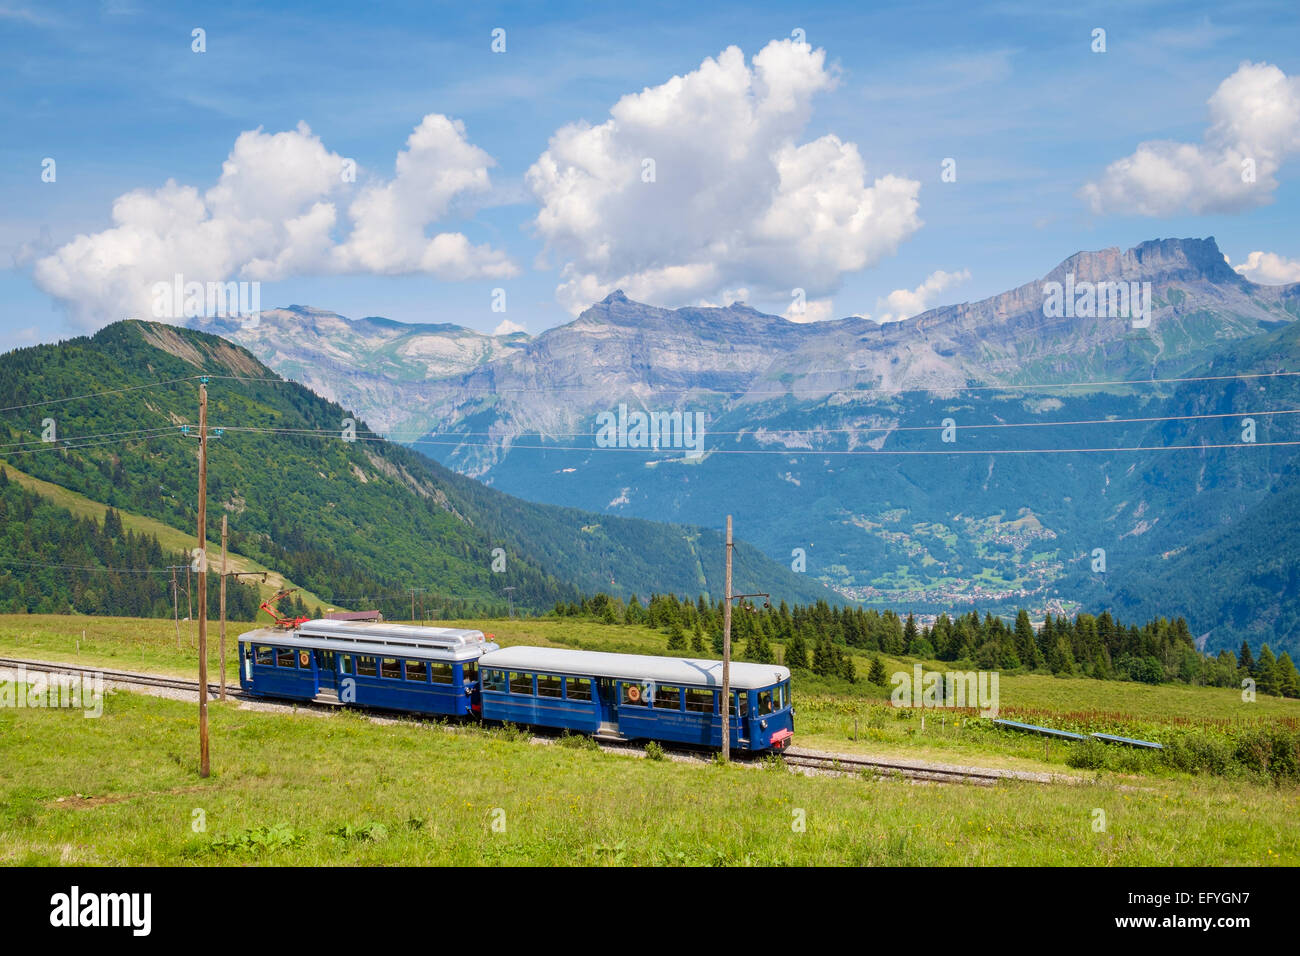 The Mont Blanc mountain cog train with Servoz village below, at Bellevue, near Chamonix, French Alps, France - Stock Image